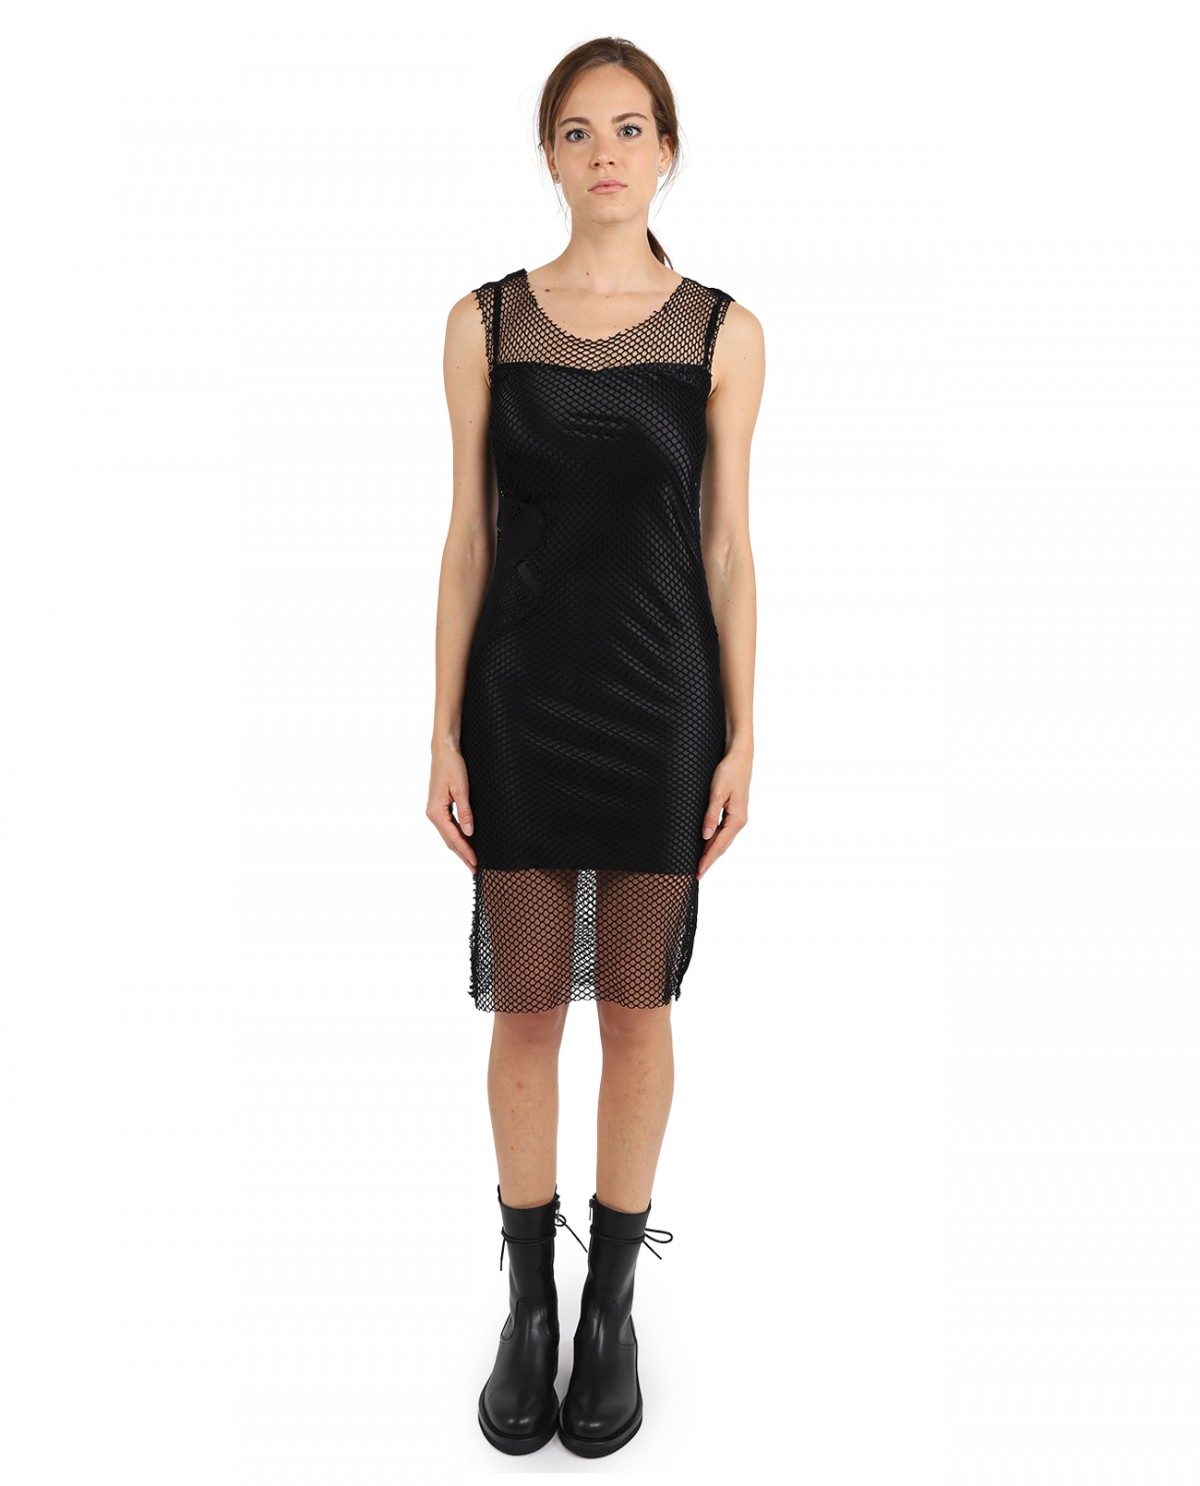 Ann Demeulemeester black net dress